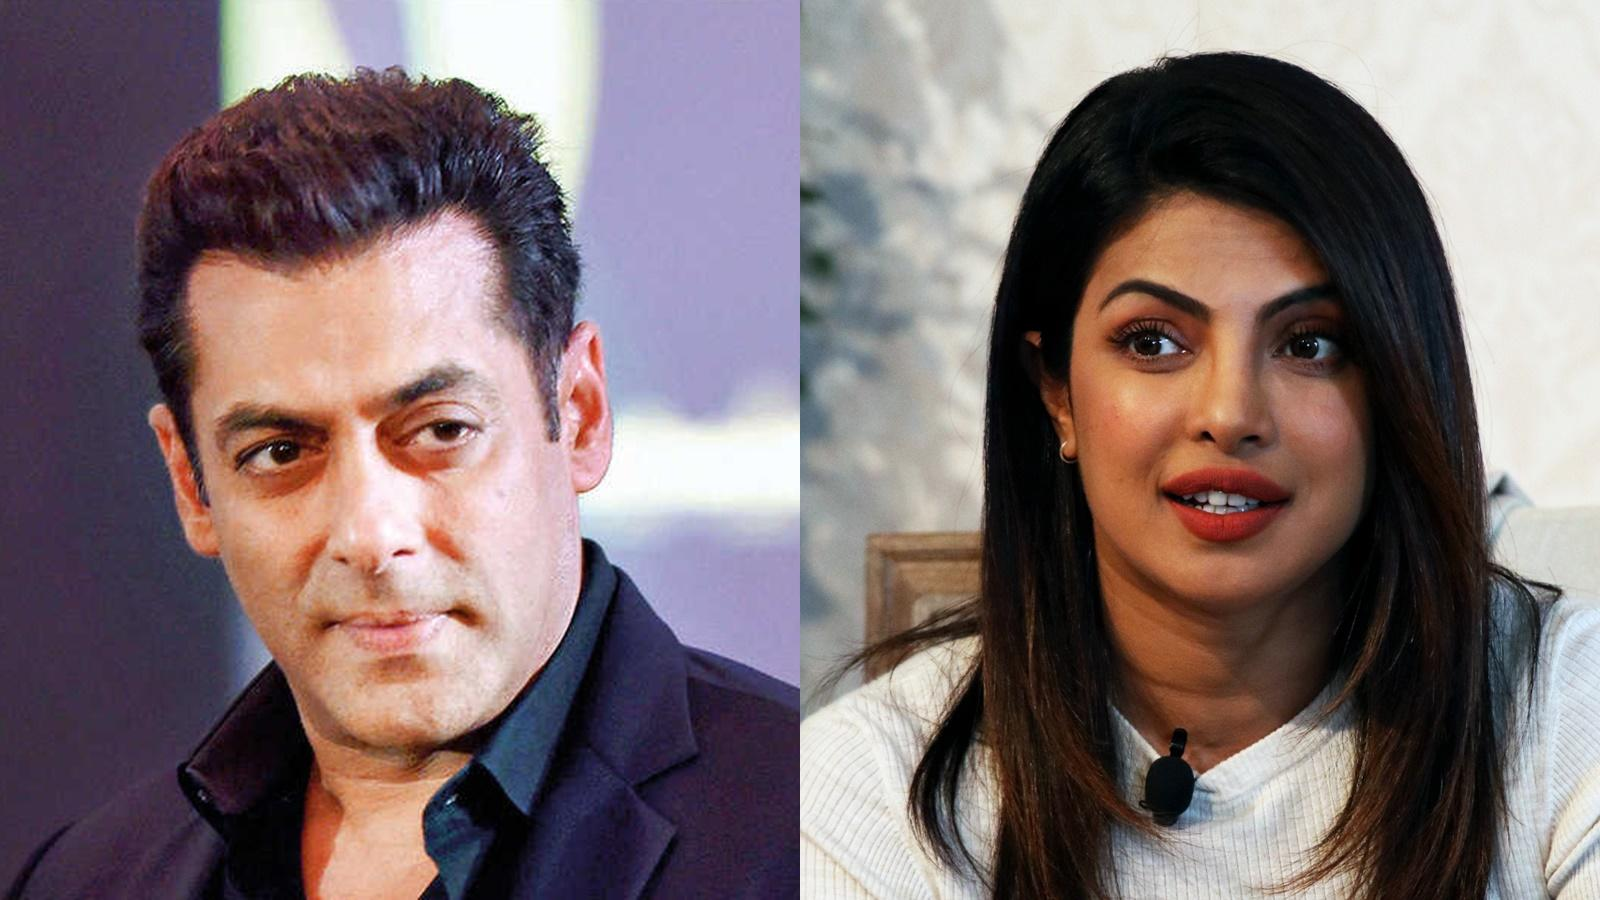 salman-khan-leaving-no-stone-unturned-to-taunt-priyanka-chopra-for-leaving-bharat-right-before-the-shoot-schedule